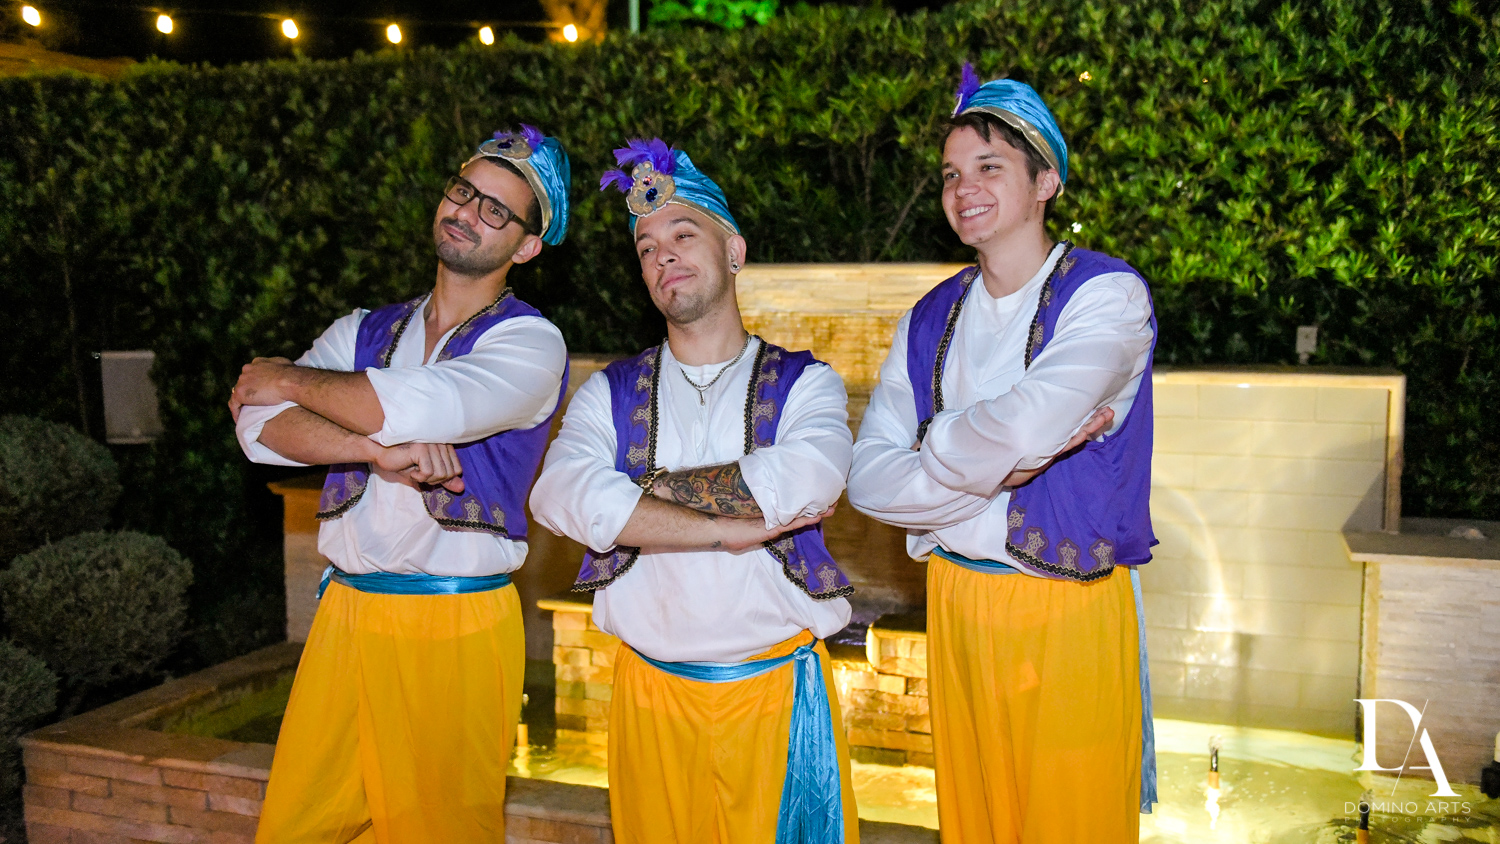 jeannies at Exotic Moroccan BNai Mitzvah at Lavan by Domino Arts Photography